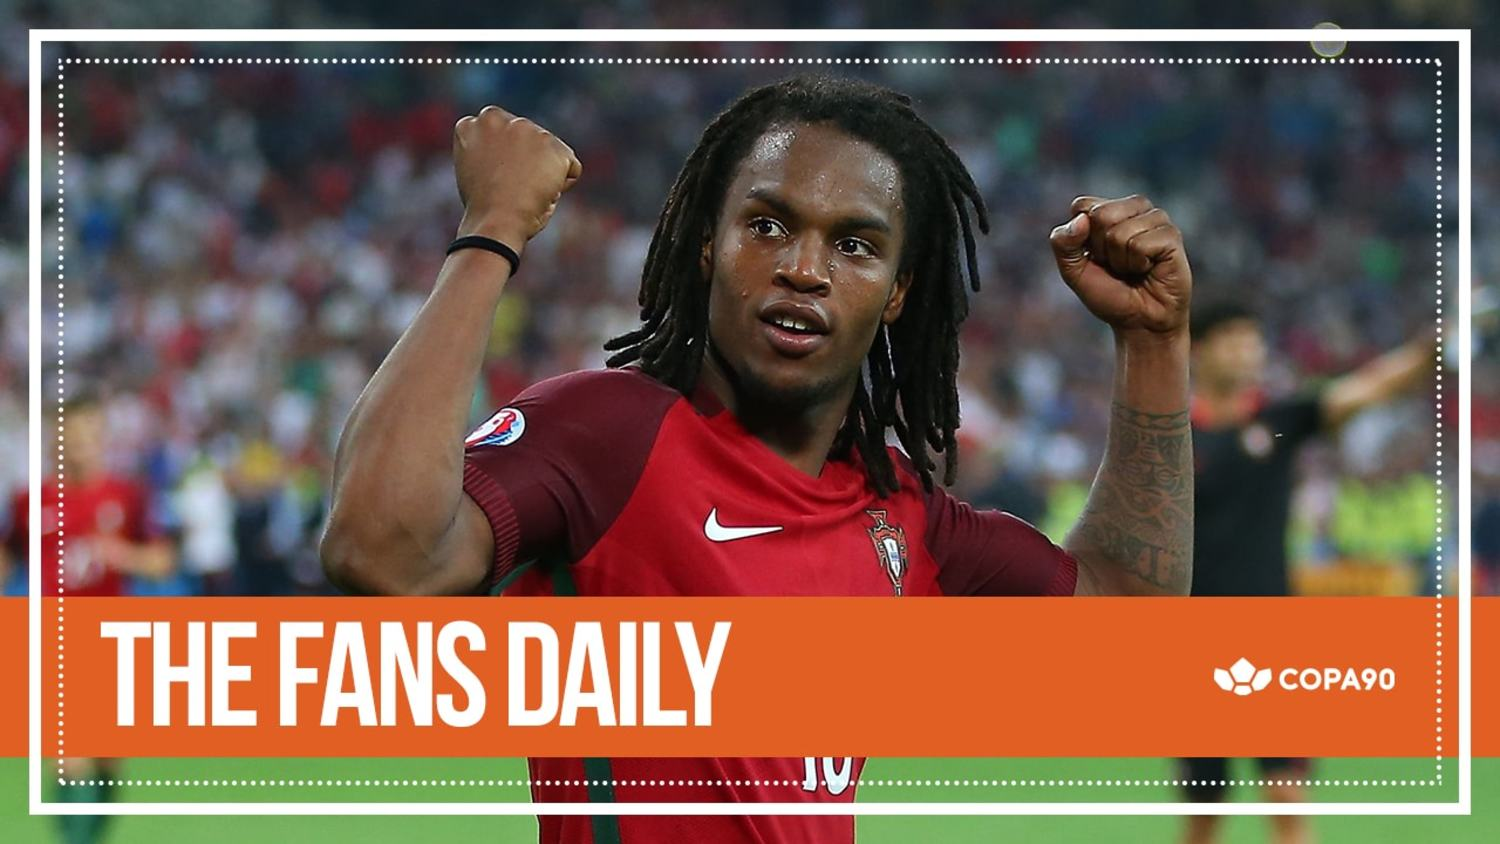 Wonderkid Renato Sanches Fires Portugal Into Semis | The Fans Daily